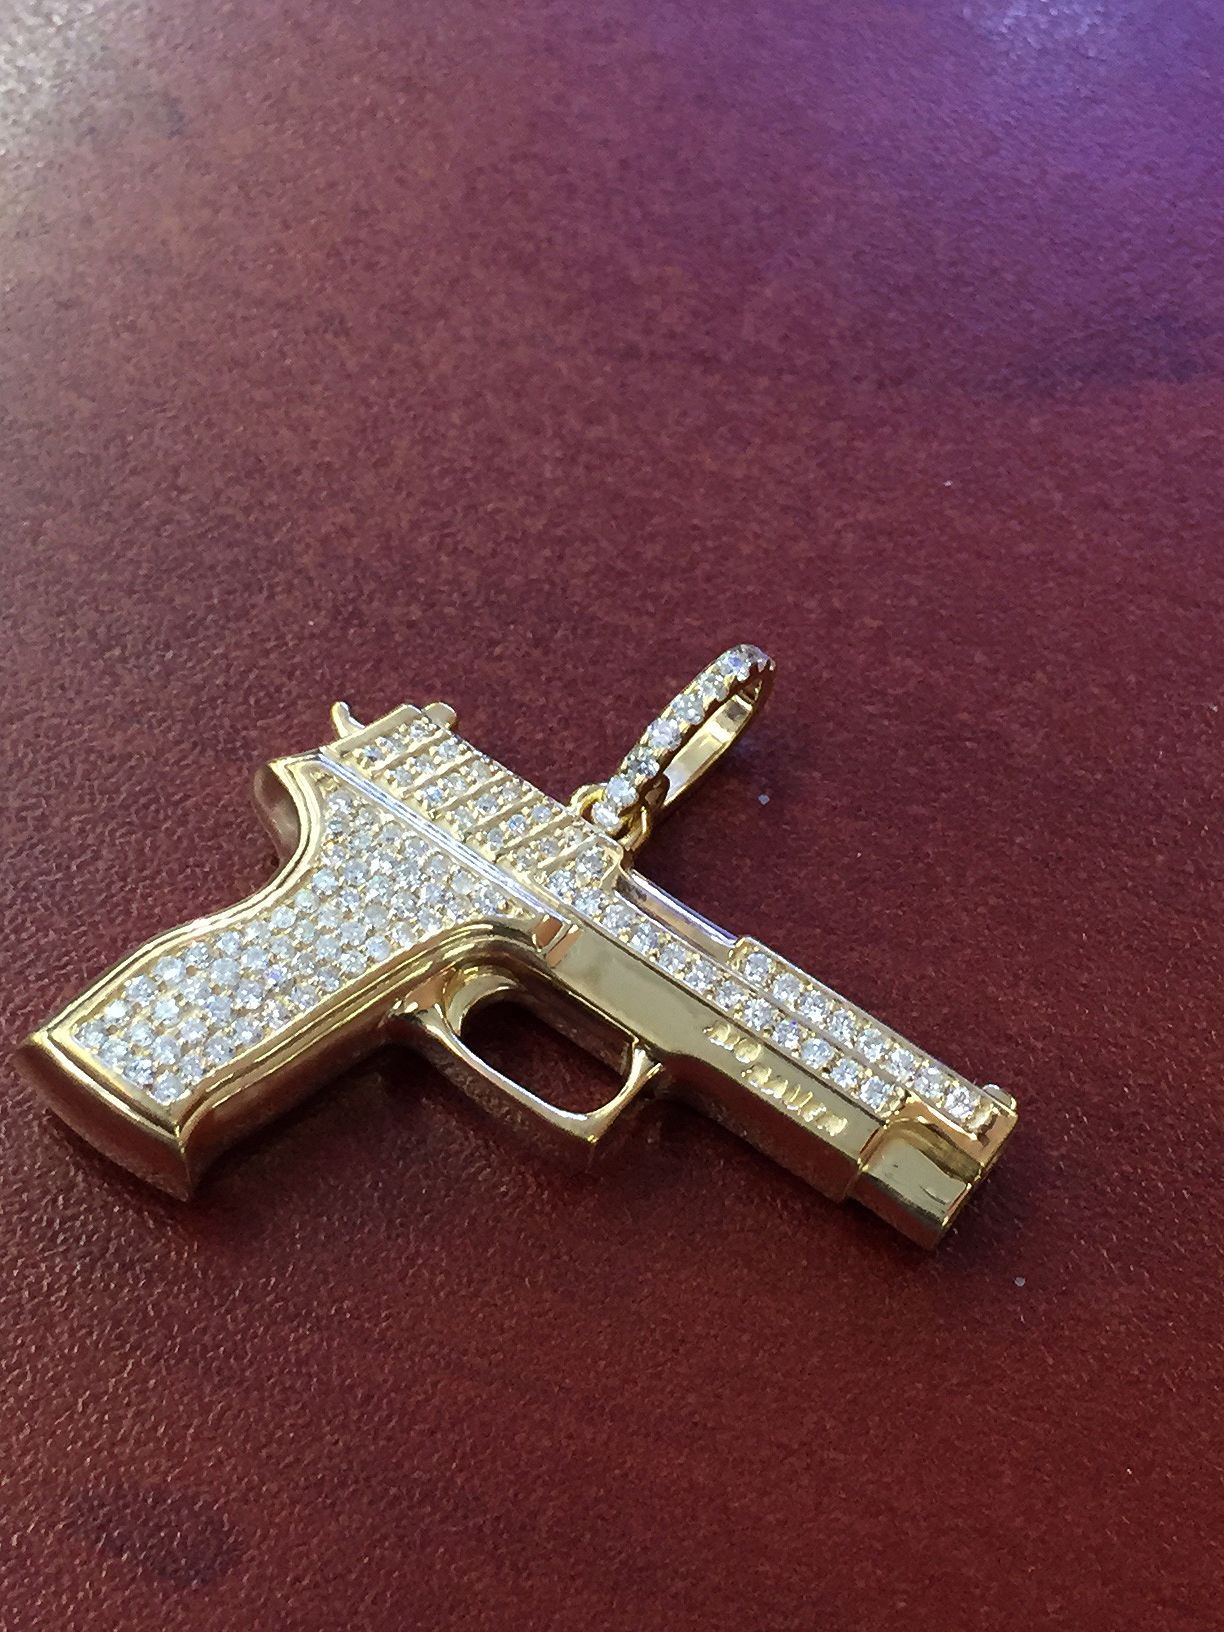 Buy a hand crafted 14k yellow gold diamond gun pendant charm 061 custom made 14k yellow gold diamond gun pendant charm 061cts round brilliant cut sig sauer aloadofball Image collections